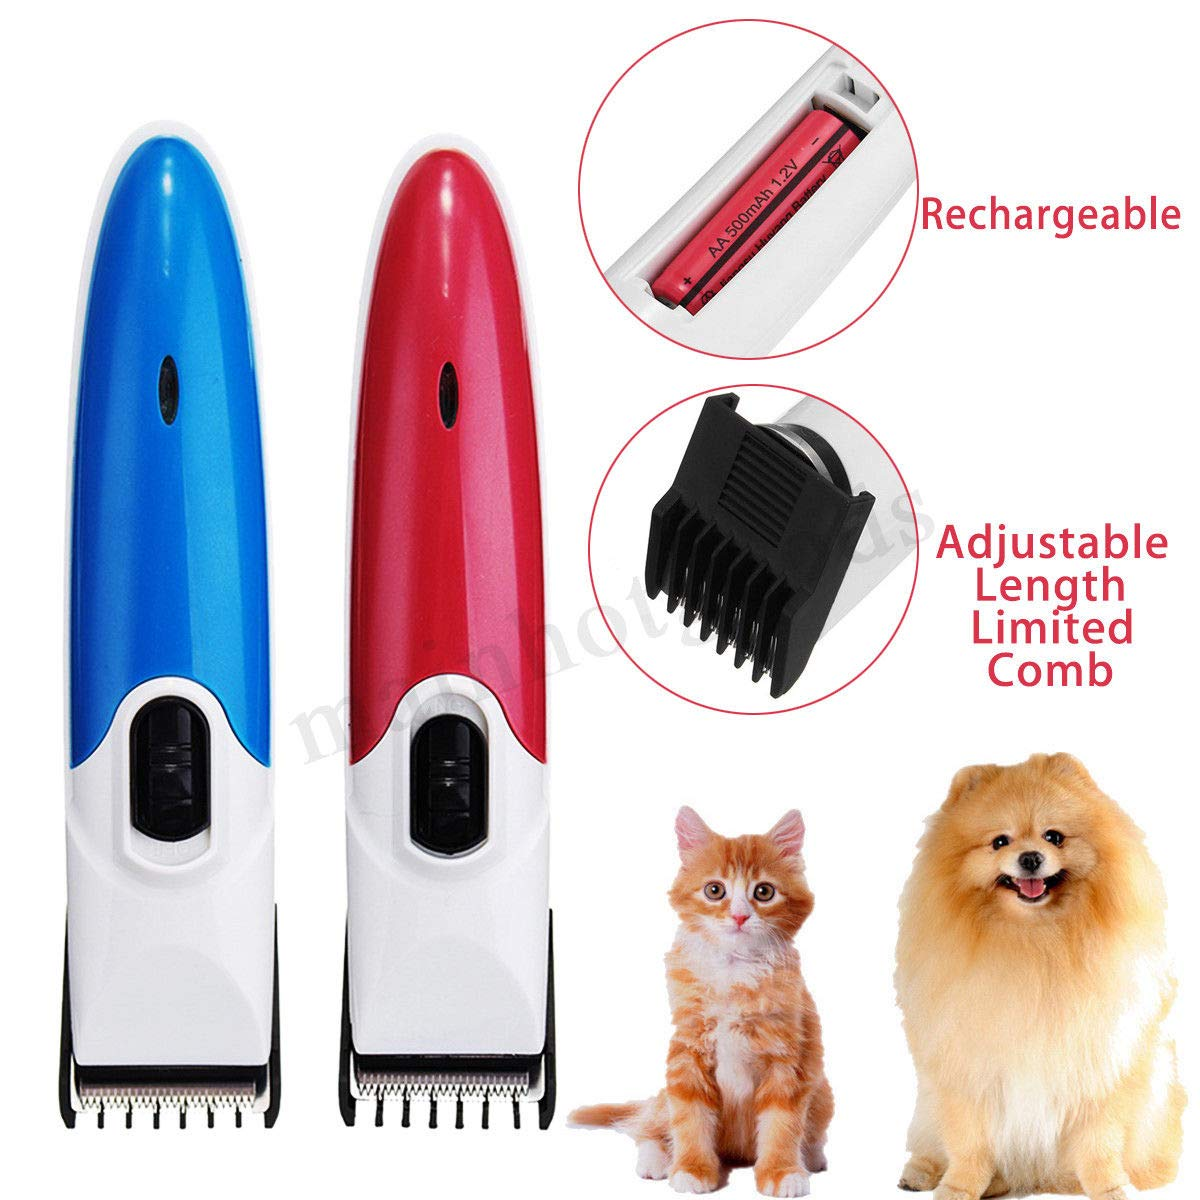 Generic mmer Cutting Clippers Cordless Cat Electric Pet Dog Hair Shaver Grooming Clippers Trimmer Cutting COLOR RANDOM Electric Pet